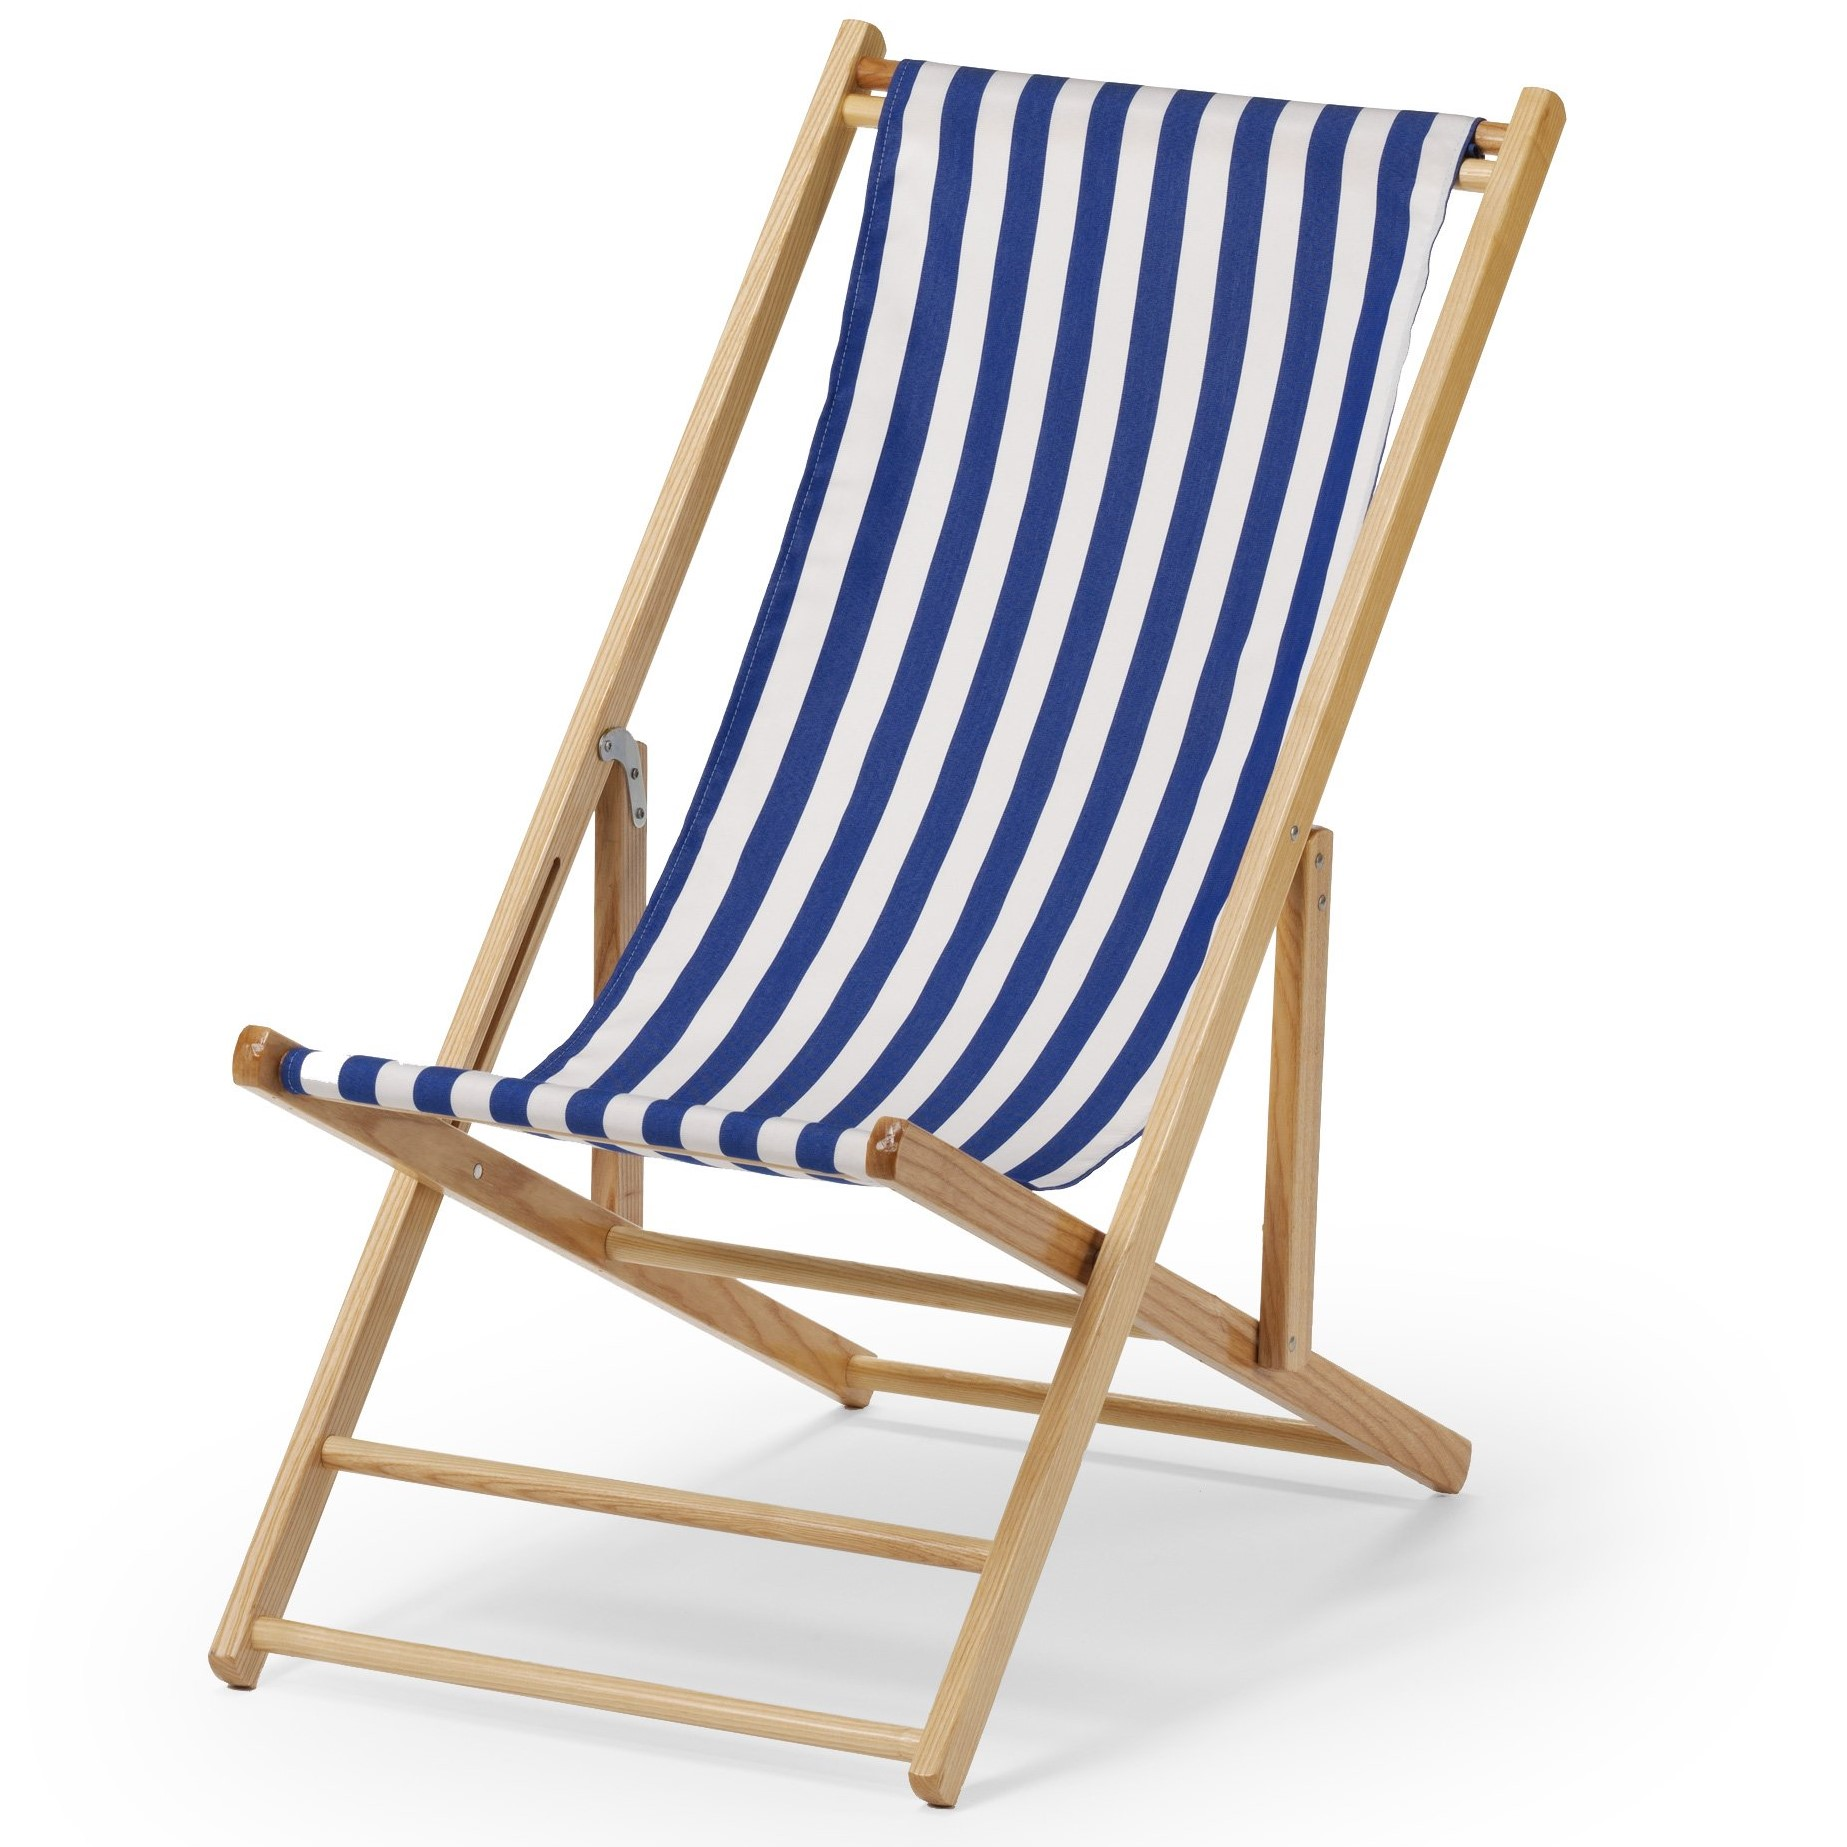 Deck Chair Hire  Traditional Seaside Deck Chairs For Hire